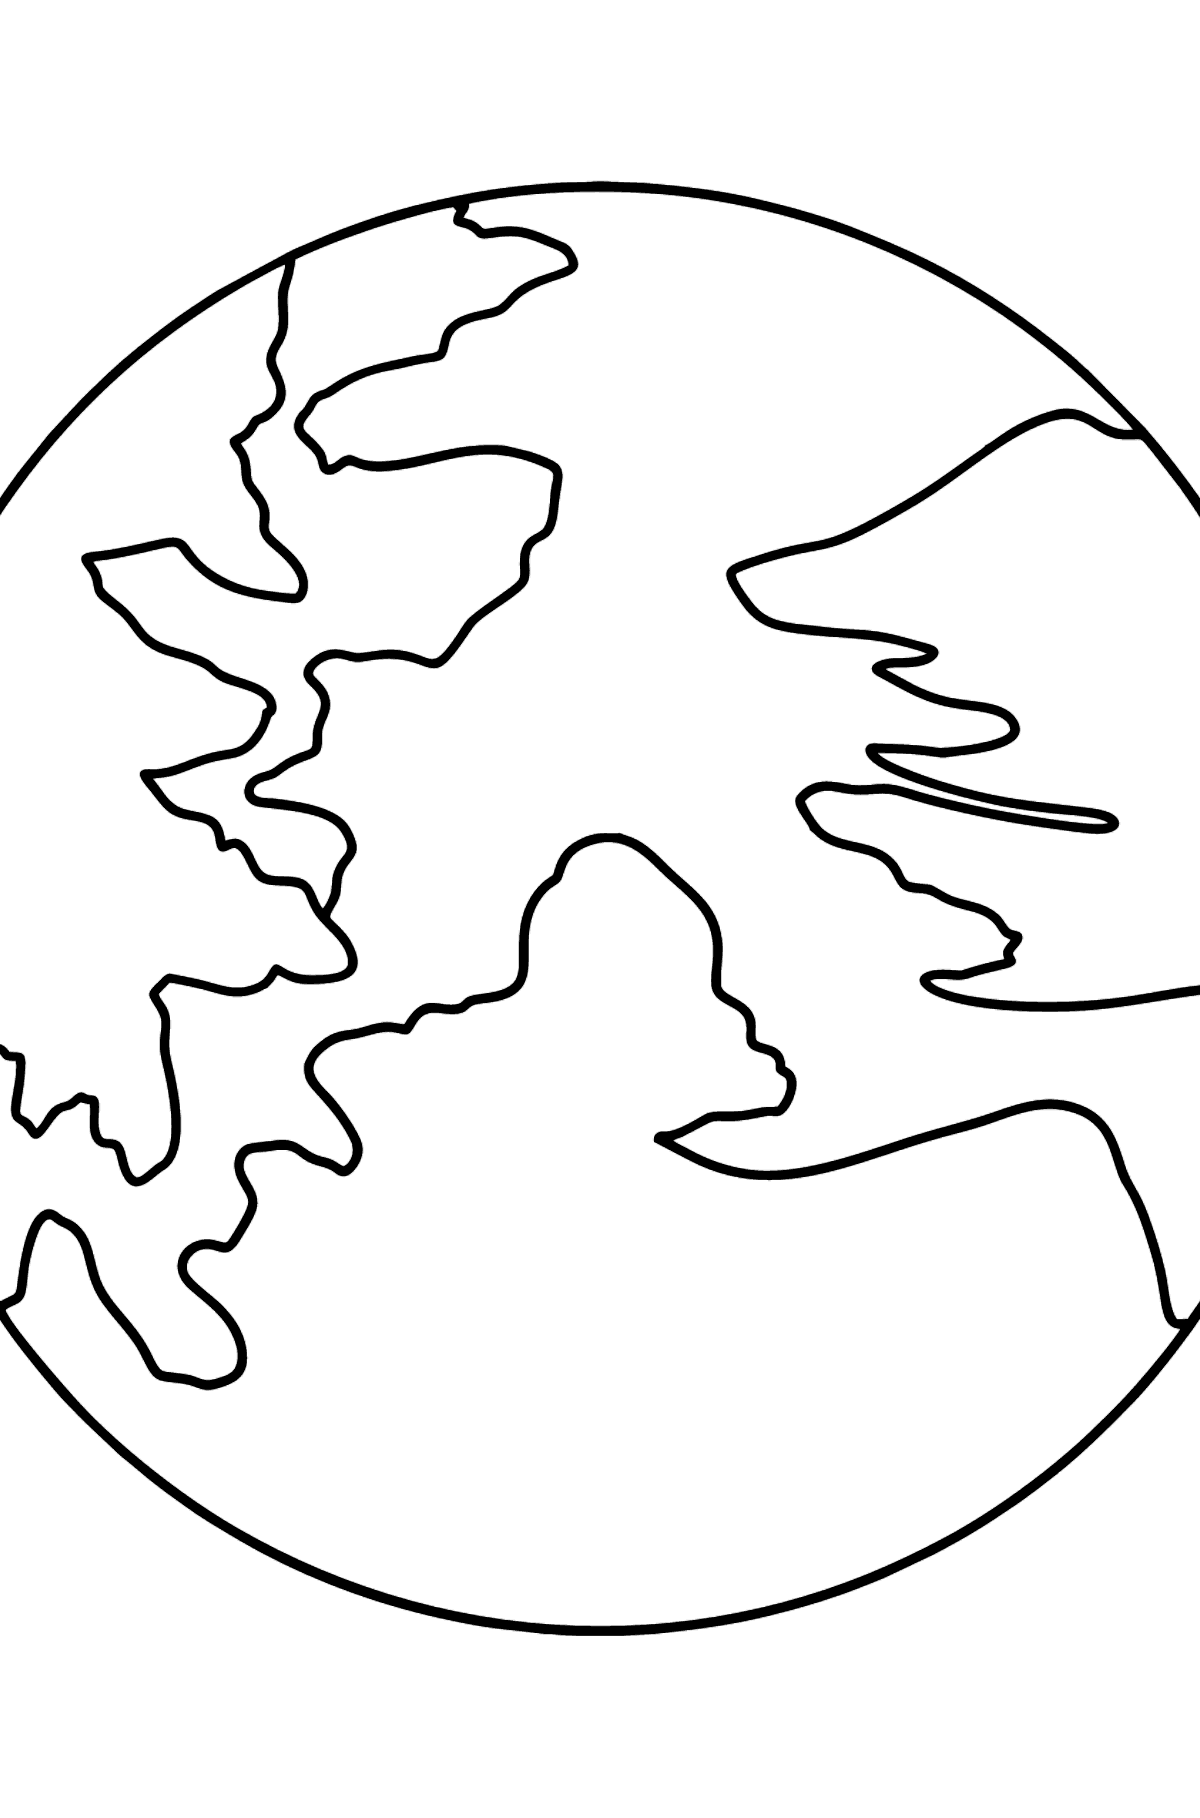 Pluto coloring page - Coloring Pages for Kids